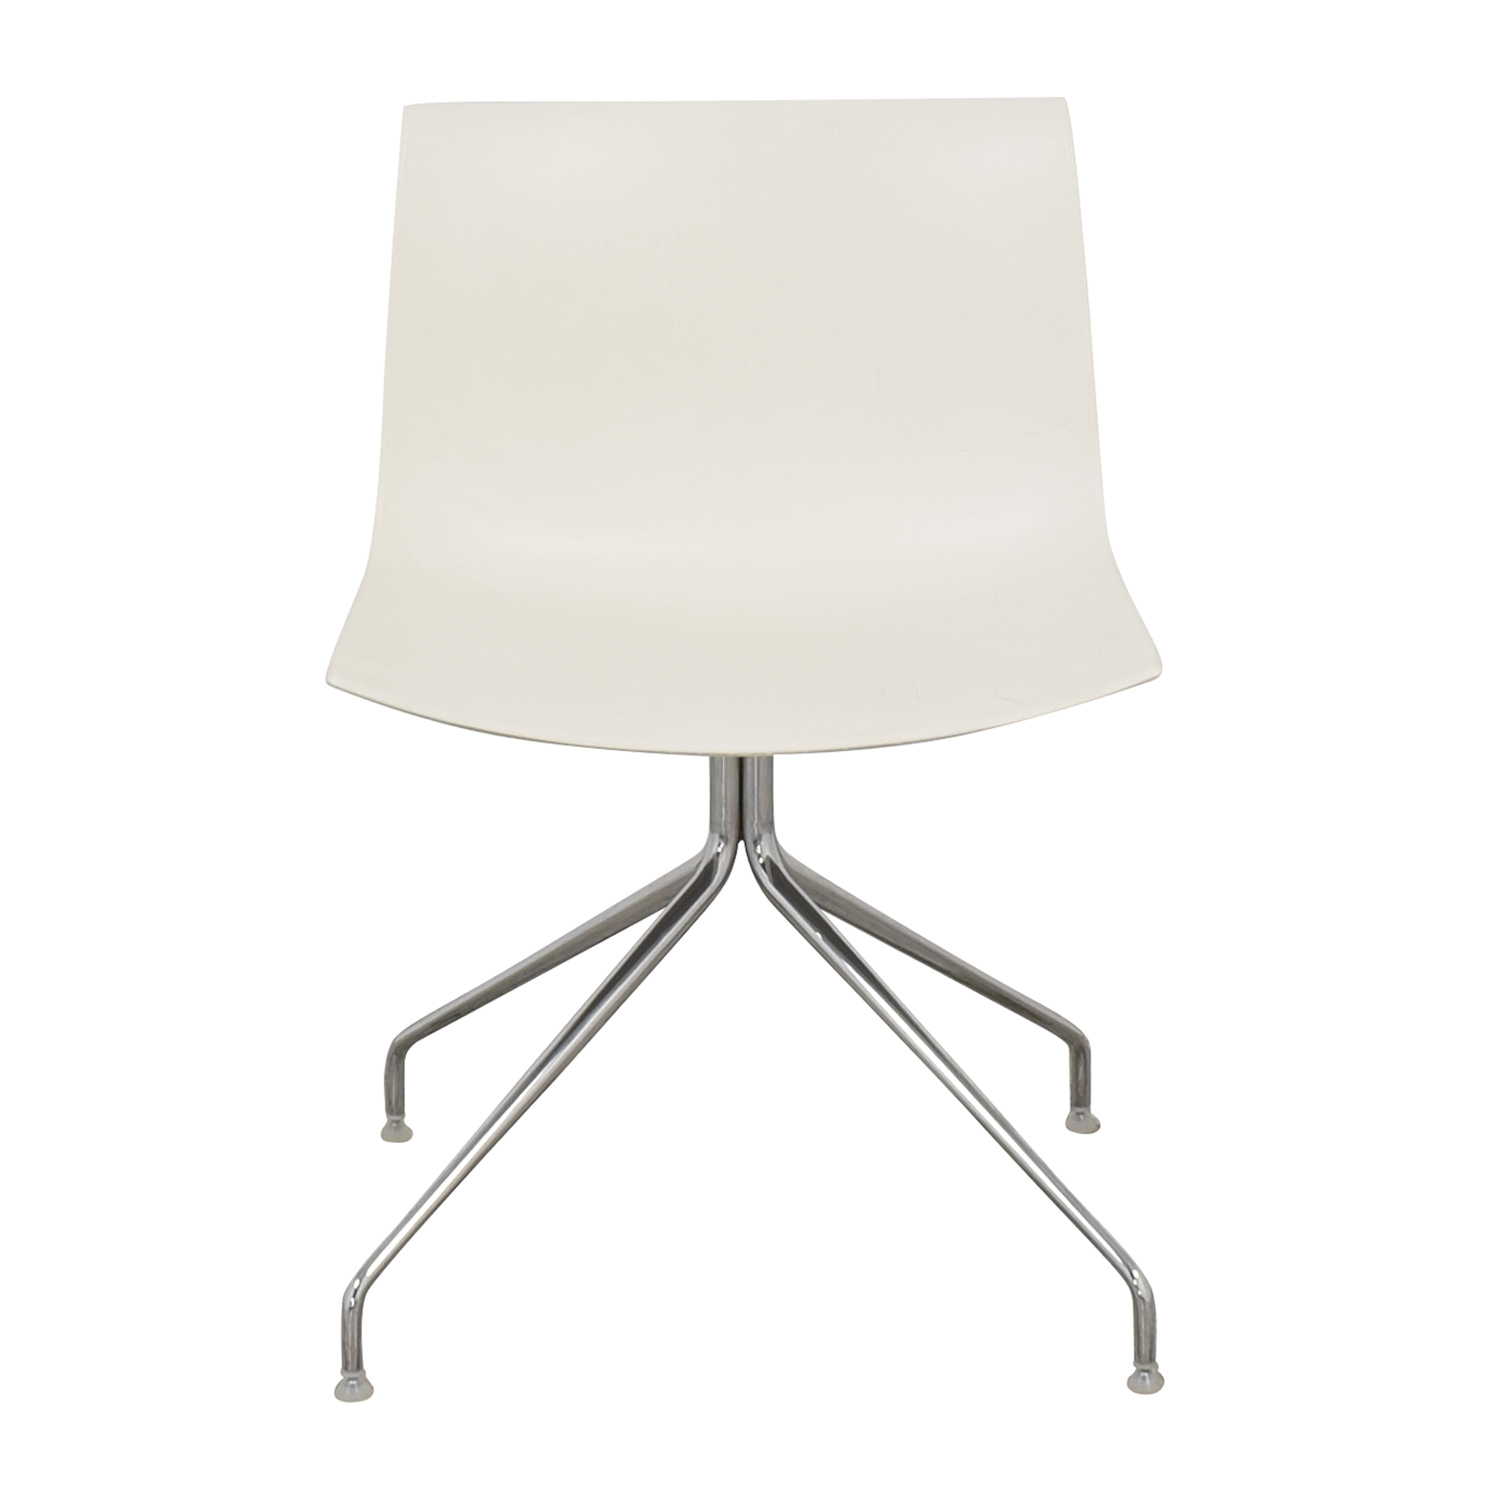 Arper Arper Catifa 46 Trestle Swivel Chair Chairs